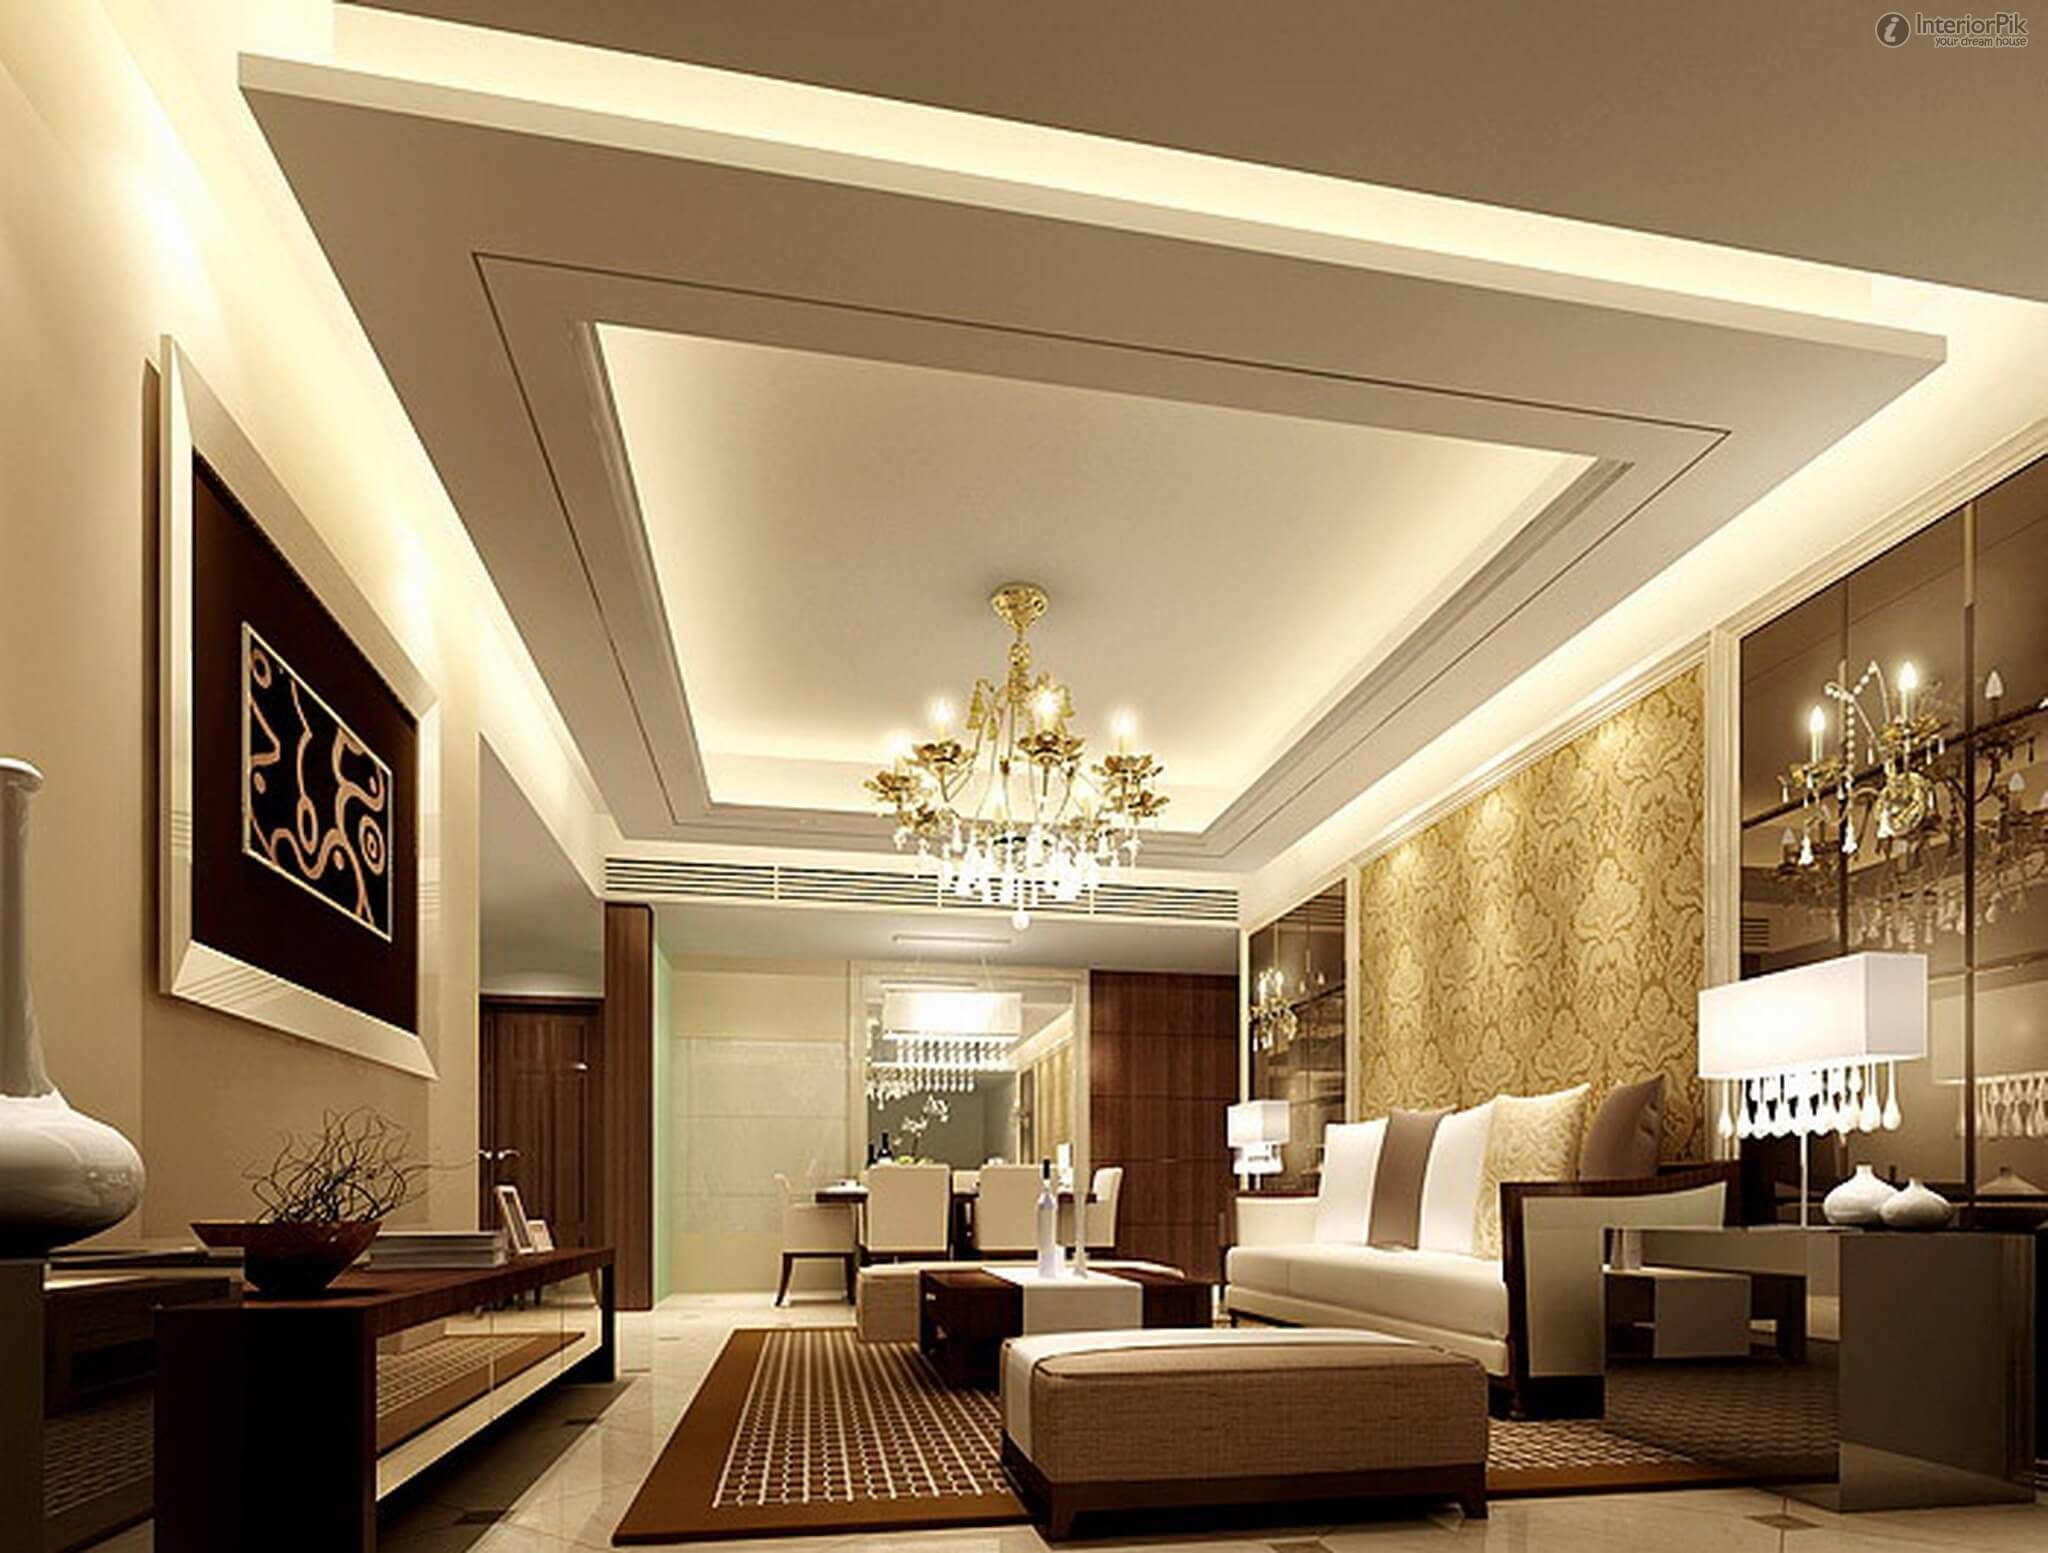 Living room ceiling ideas with many light spots that are hidden and only illuminates the ceiling and the walls. in the center of the ceiling there is a chandelier and also a golden wallpaper on the wall.